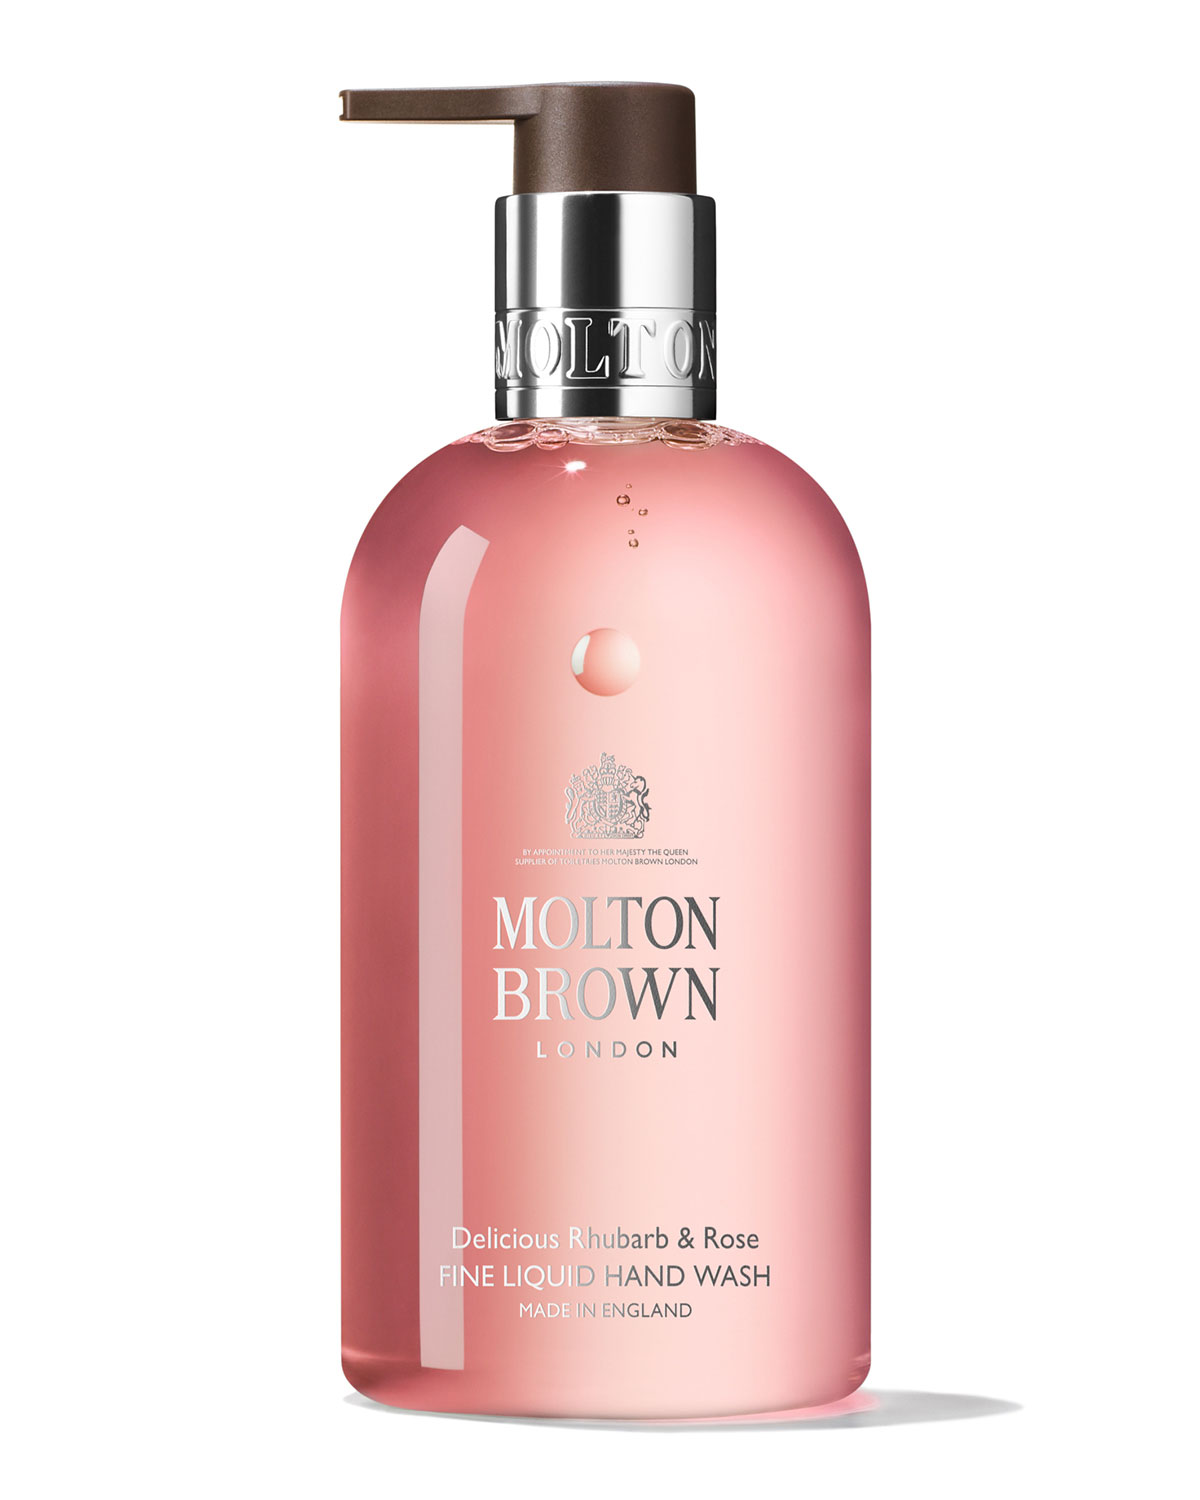 Molton Brown 10 oz. Delicious Rhubarb & Rose Hand Wash